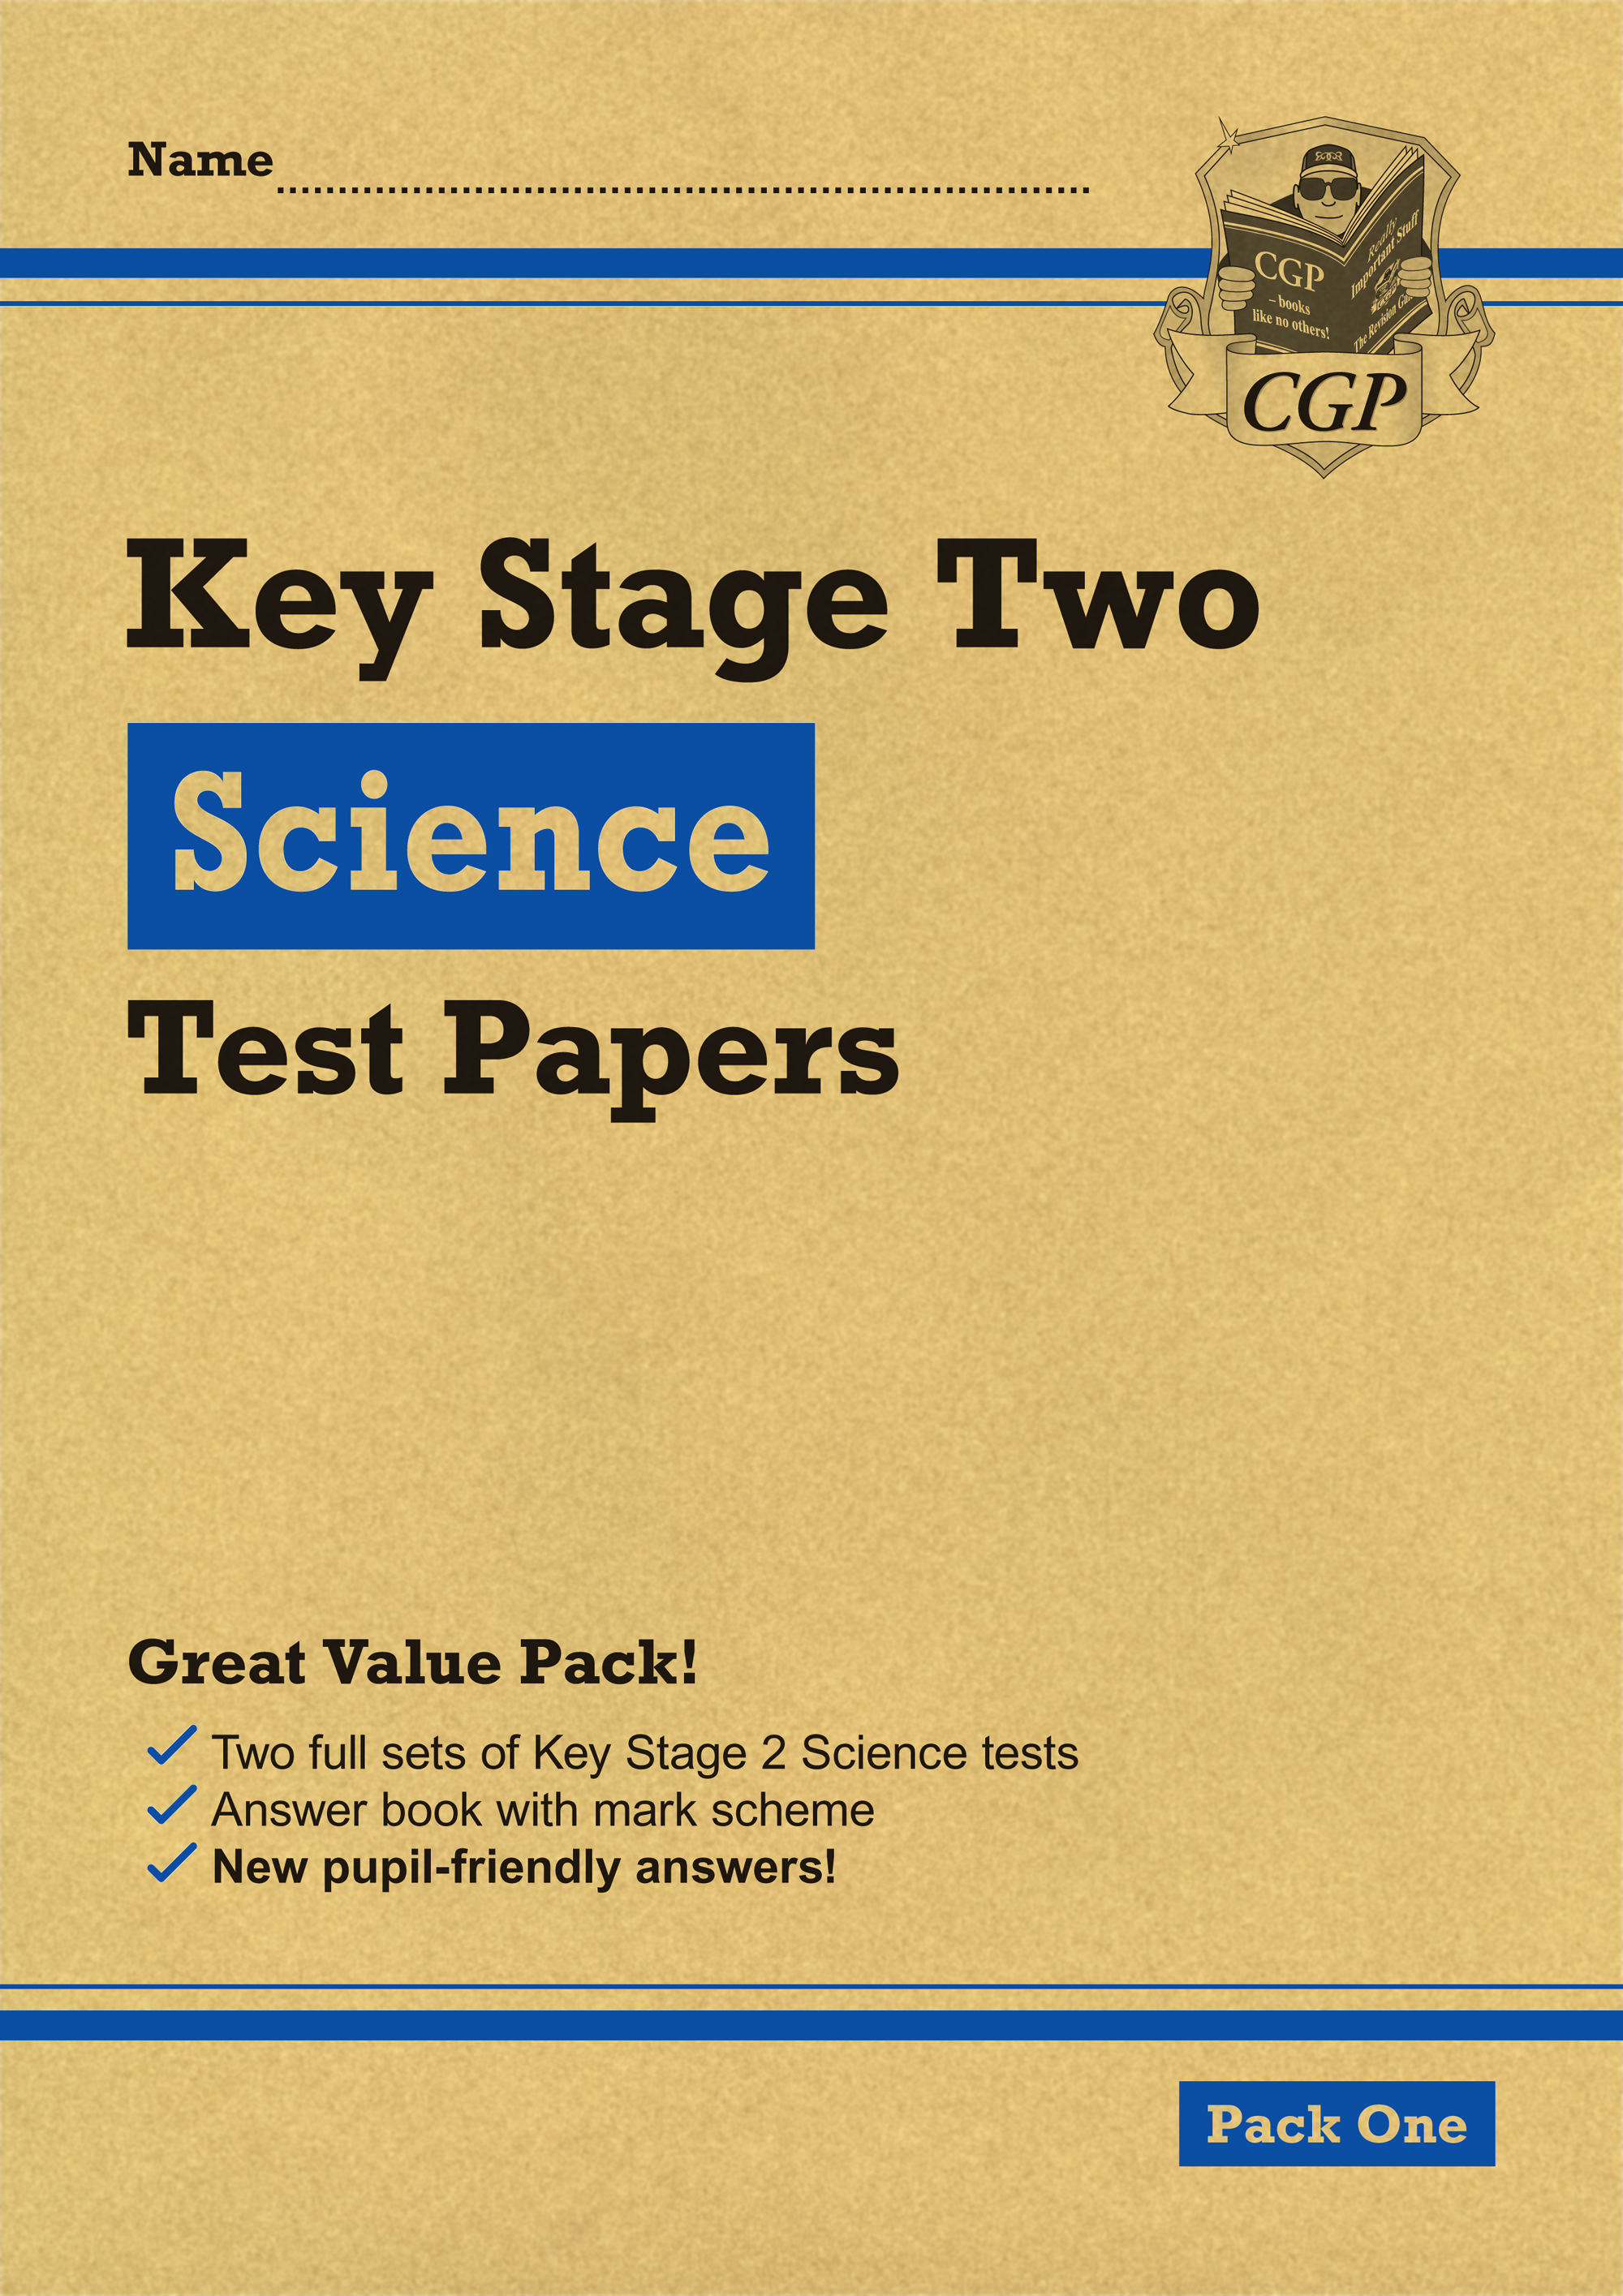 SHEP23 - KS2 Science Tests: Pack 1